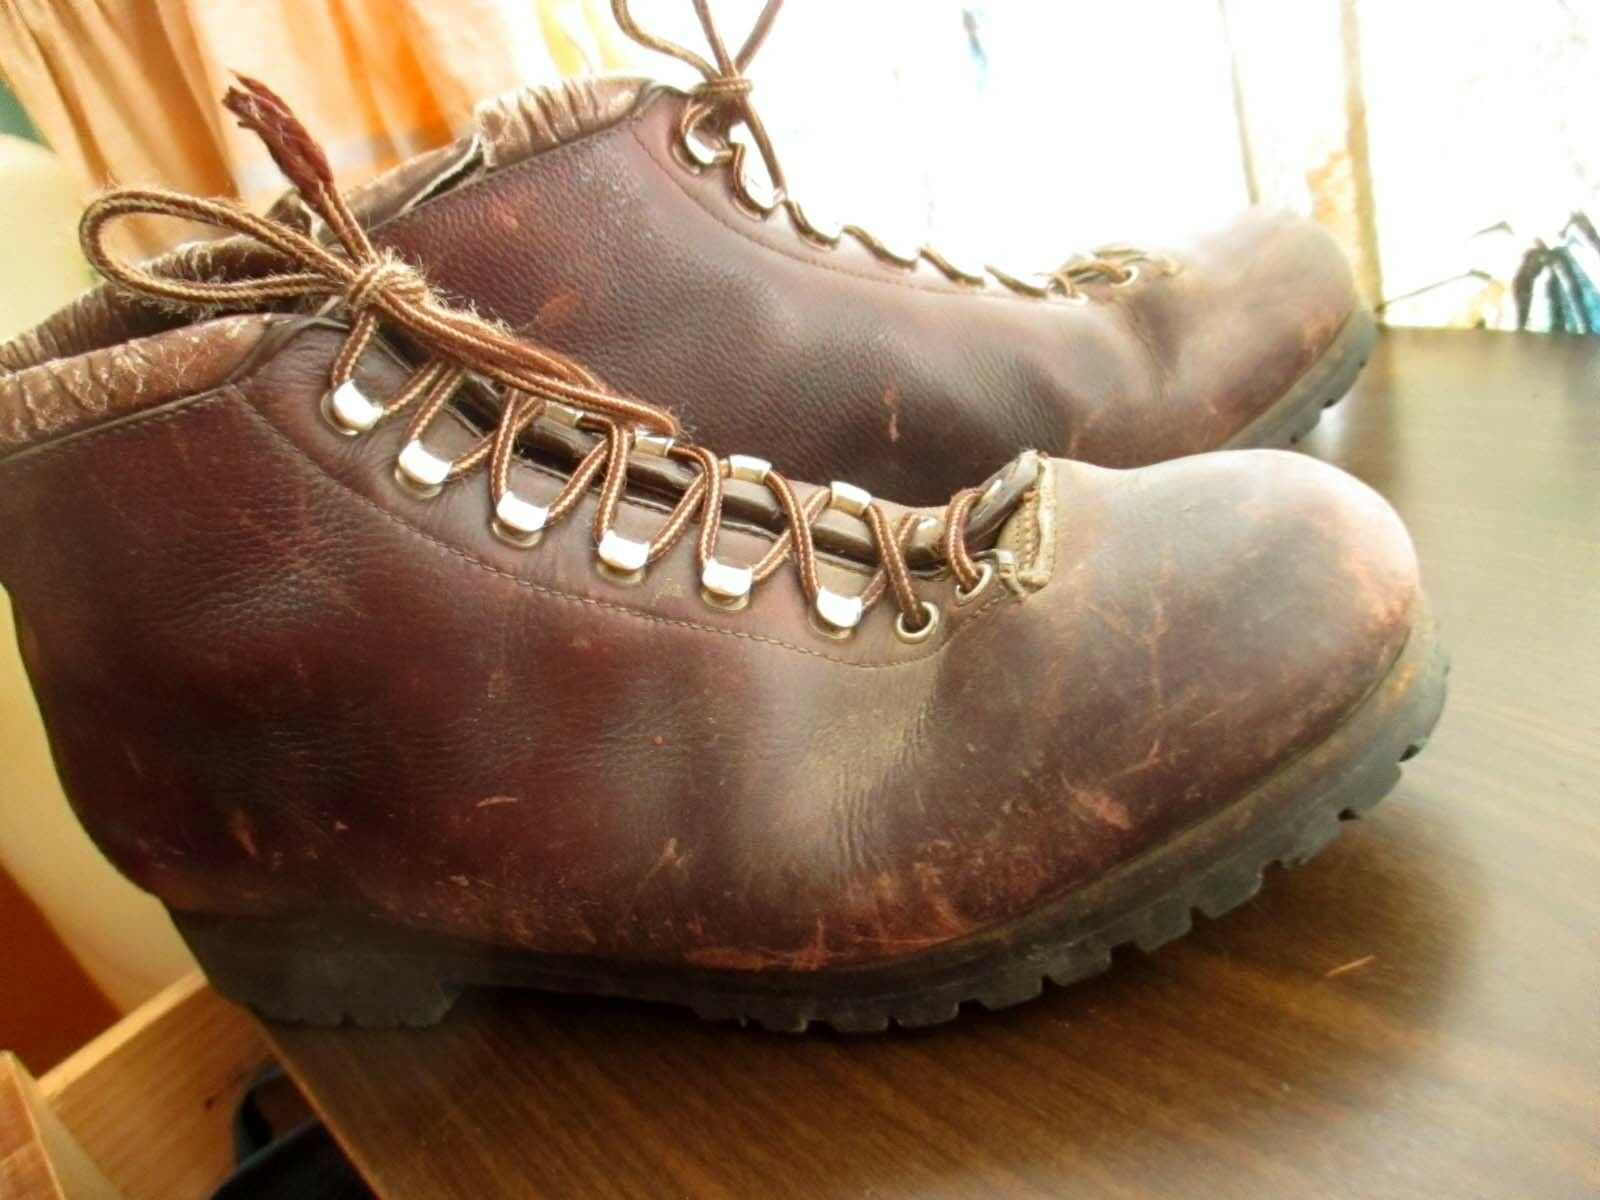 12 M Vtg. Italian Calzaturificio The Alps by FABIANO Leder Hiking Stiefel Damenschuhe